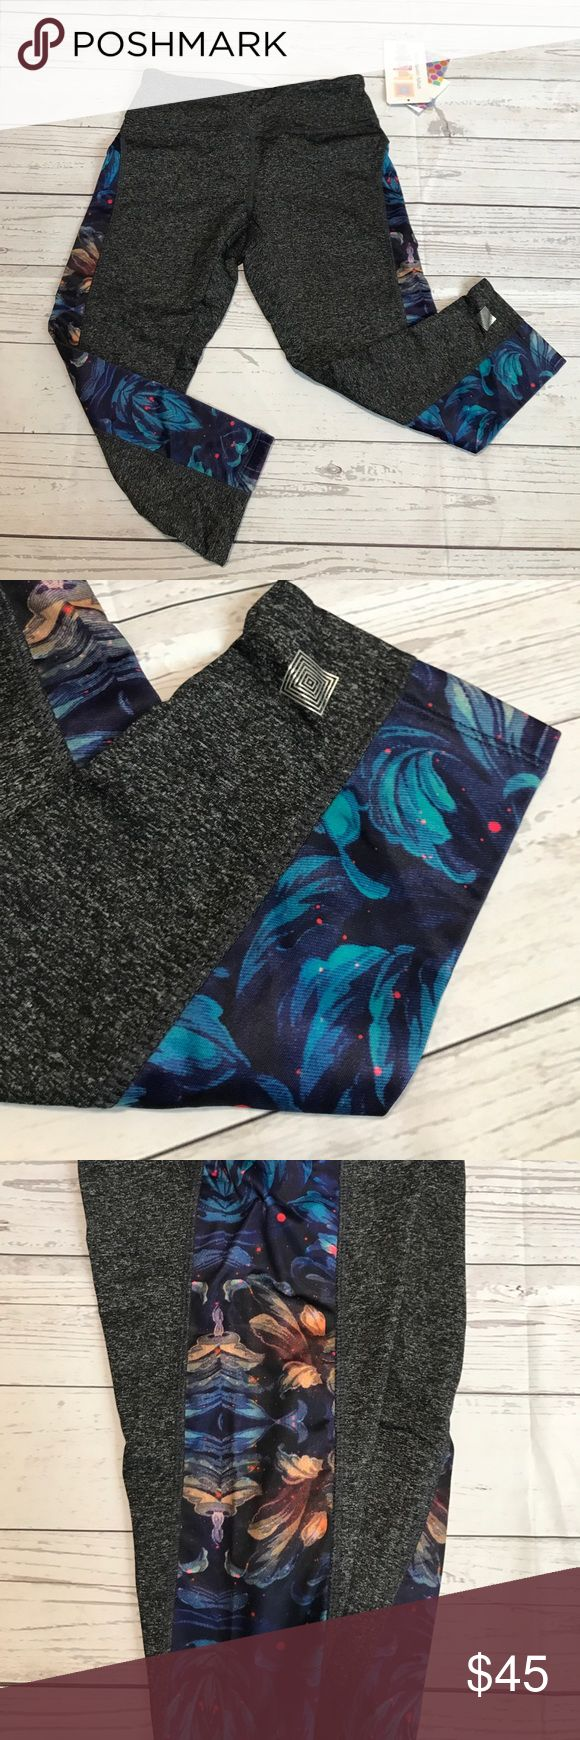 Xs Lularoe jade capris workout leggings Gray body with blue and orange floral design in the strip of the outer leg. NWT LuLaRoe Pants Capris